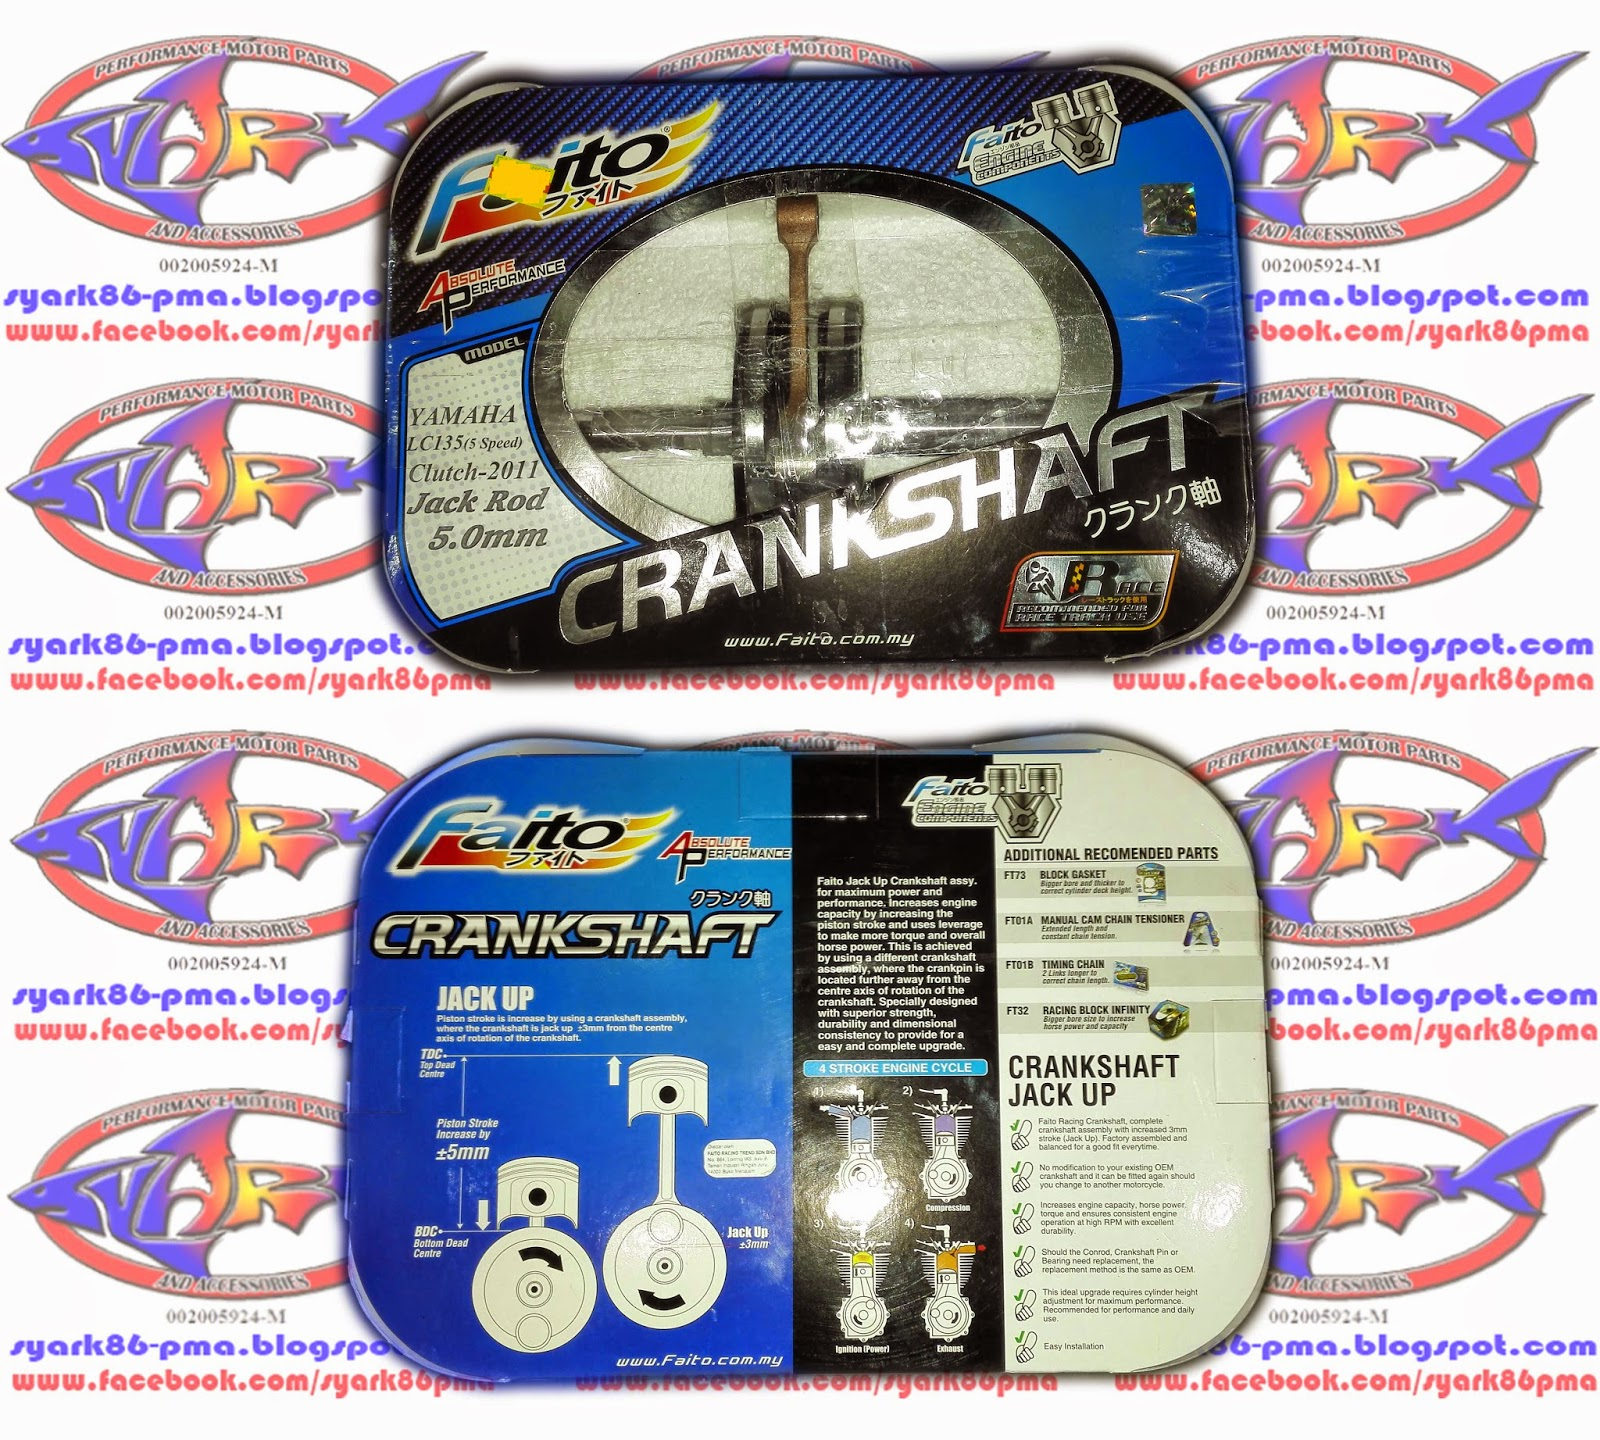 Harga Dan Spesifikasi Crankshaft Faito Update 2018 Visitbabelcom Tung Three Days Two Nite Syark Performance Motor Parts And Accessories Online Shop Est New Racing Jack Up 50mm